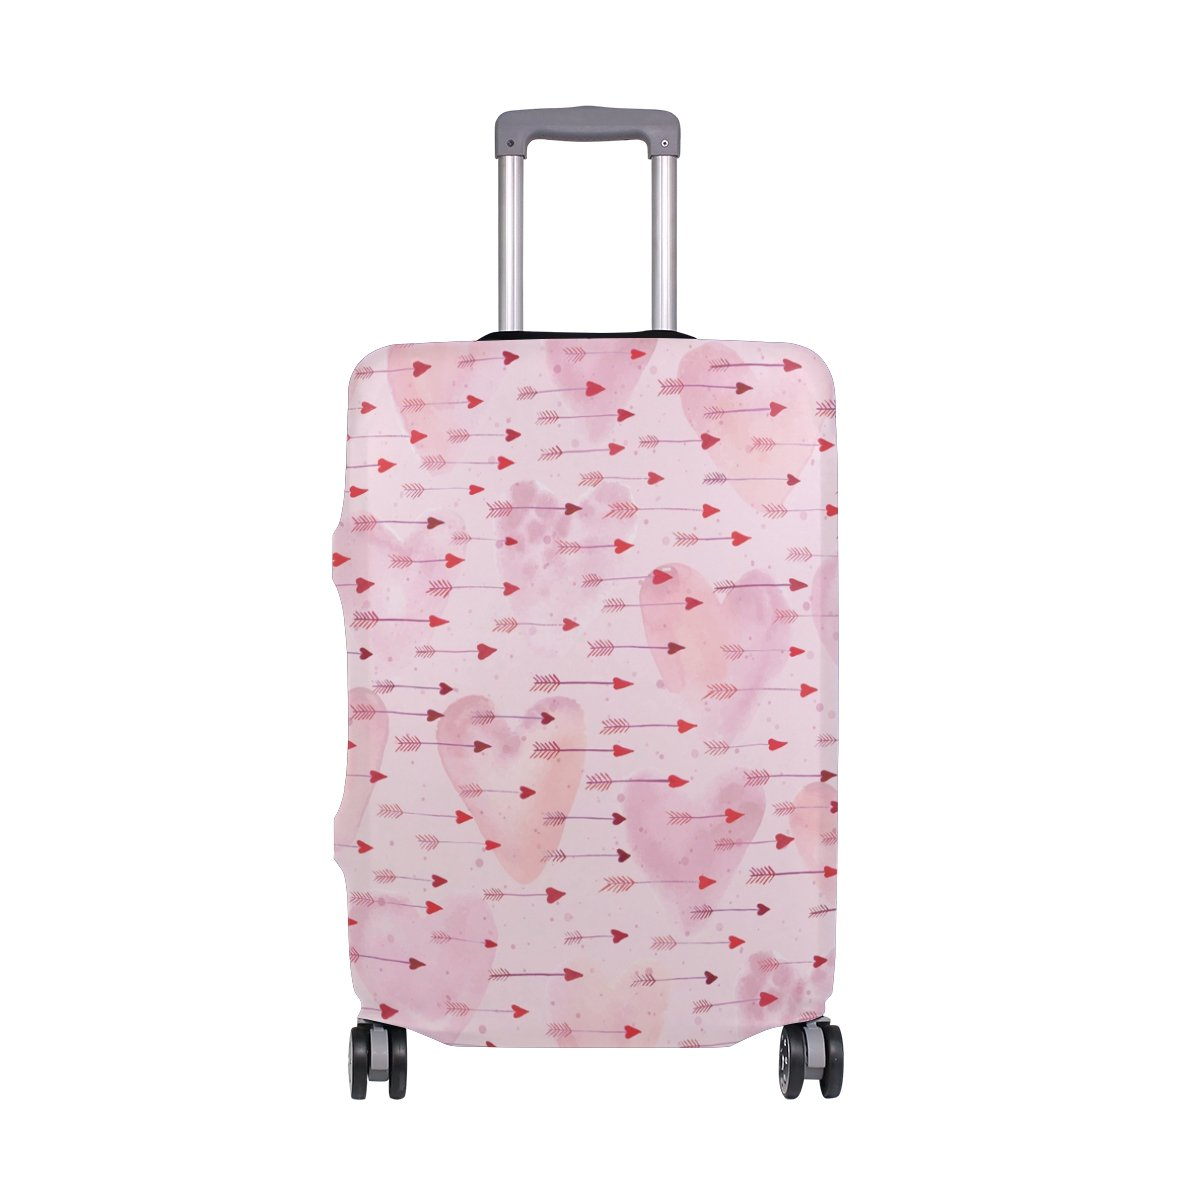 Love Luggage Cover Suitcase Protector Washable Spandex Baggage Cover with Zipper for Travel, Business and Outdoor